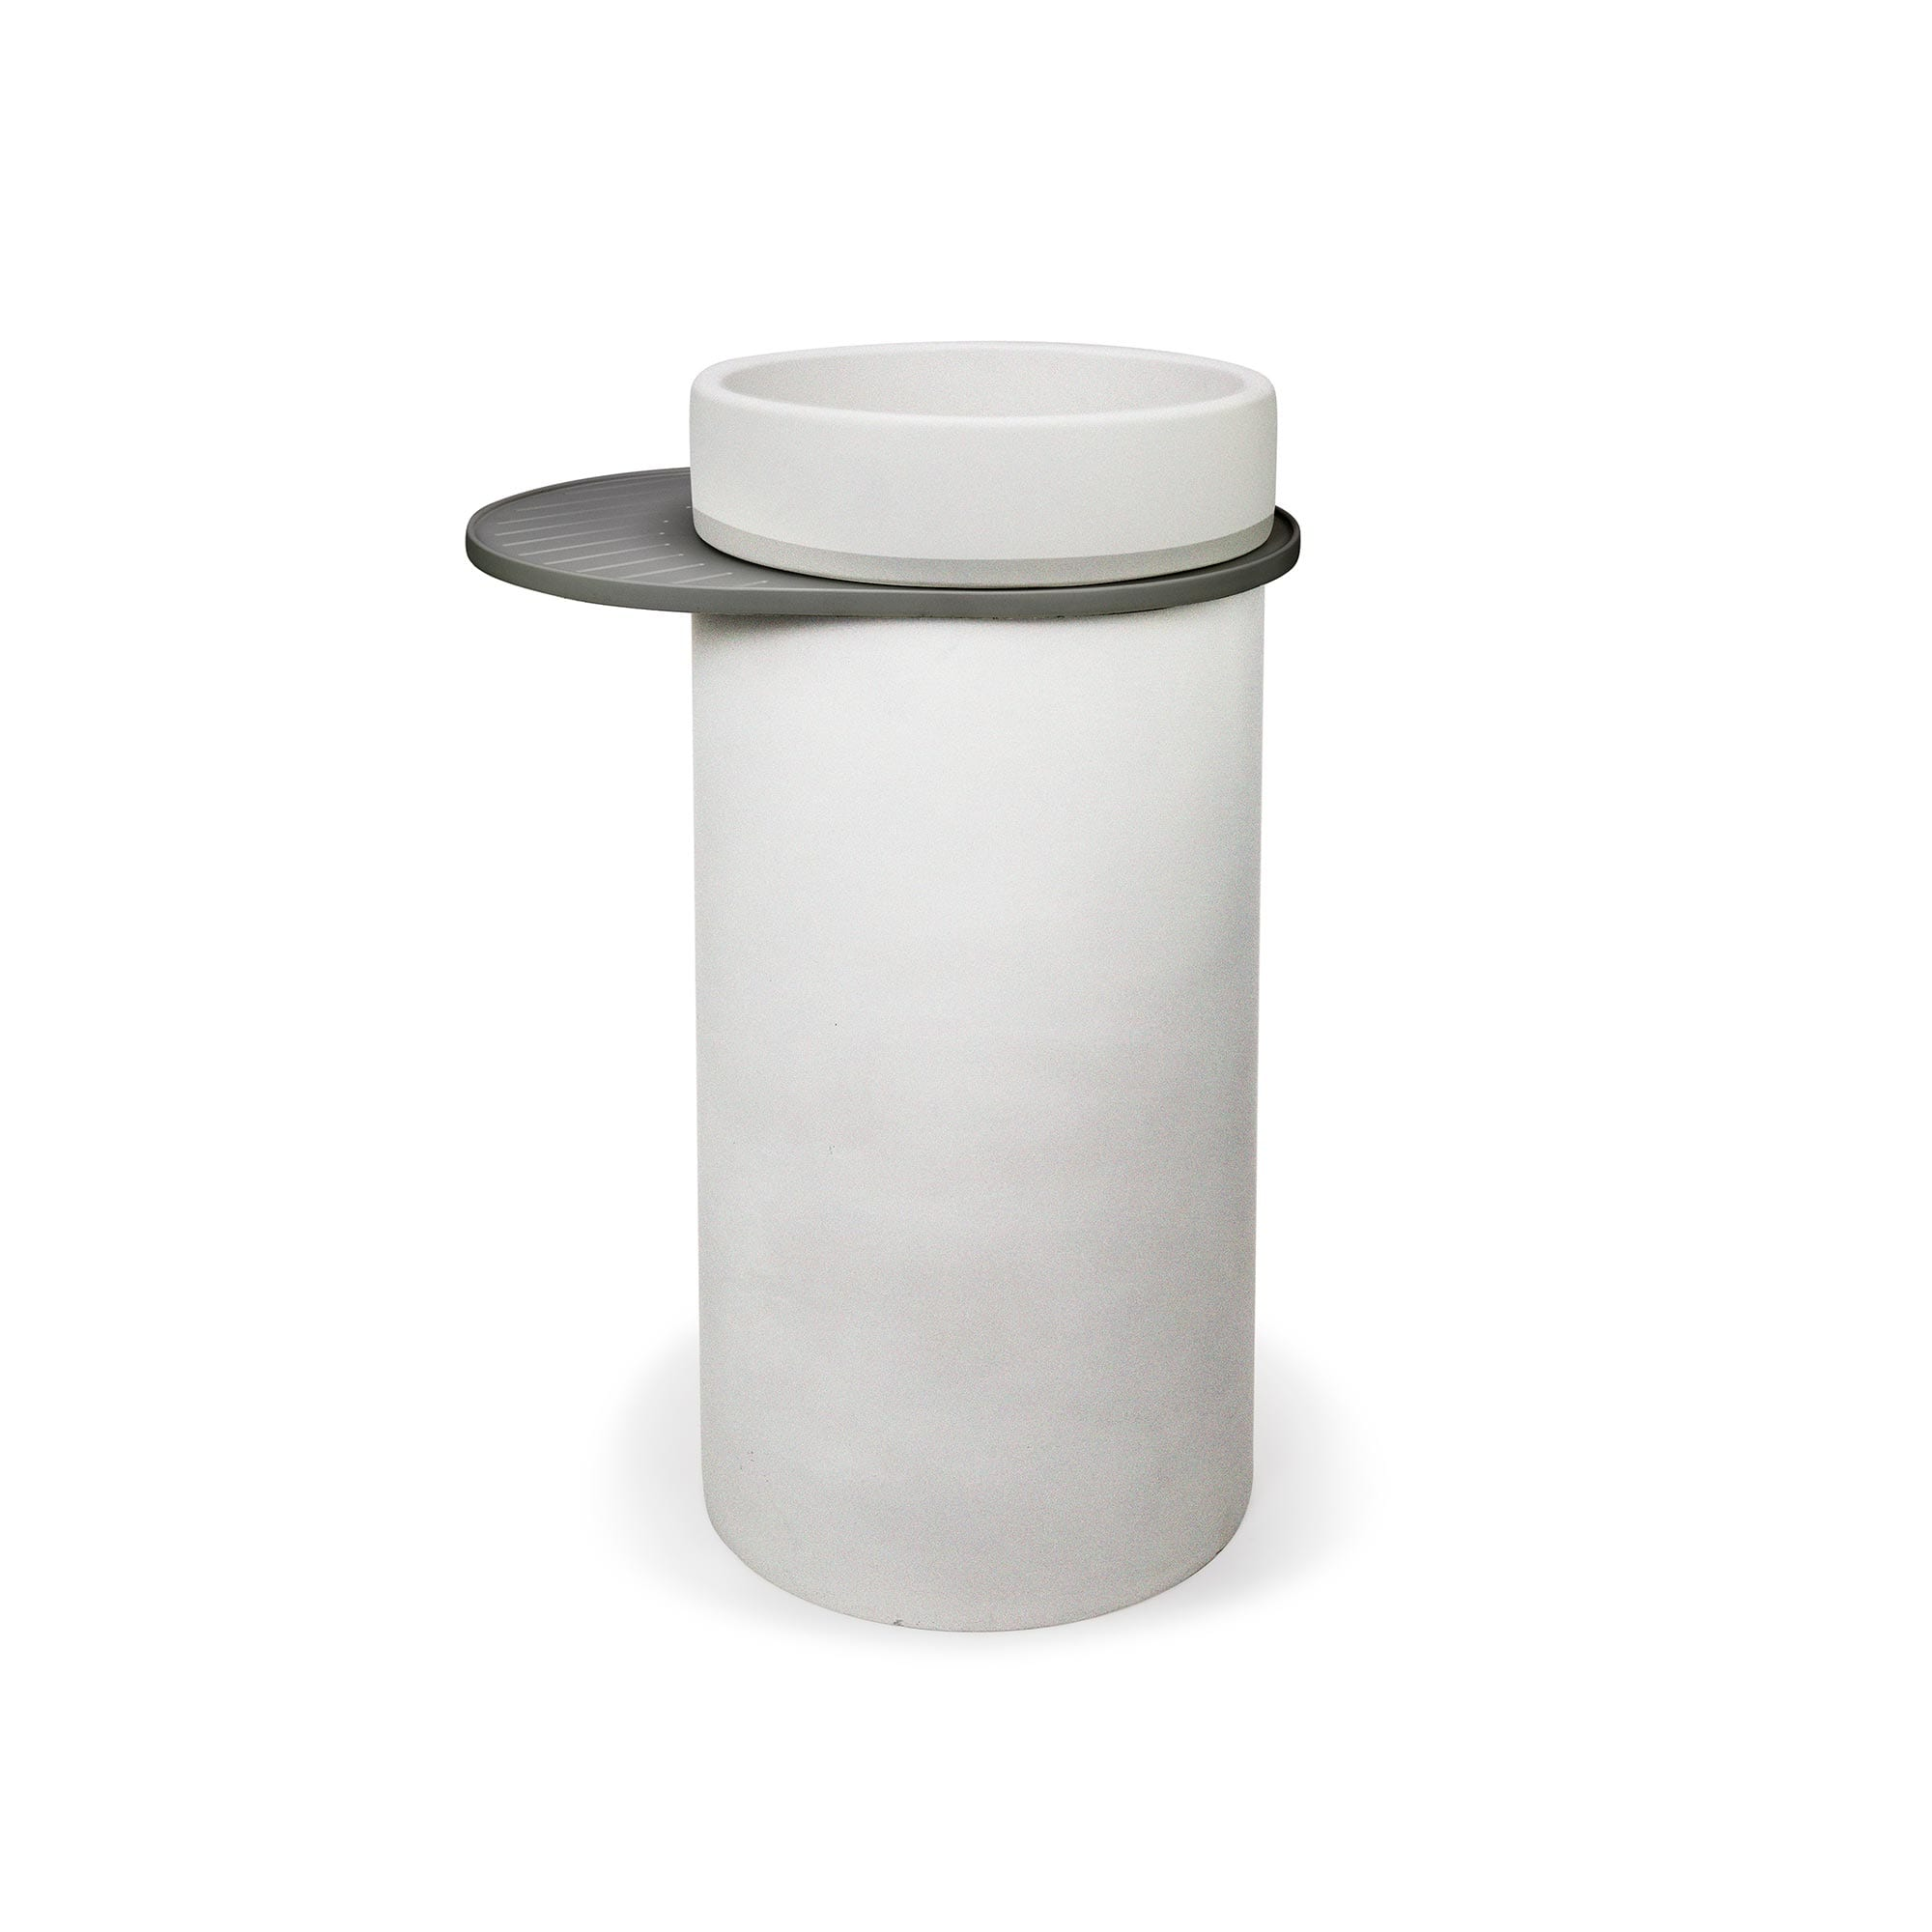 Two Tone Basin Cylinders 11